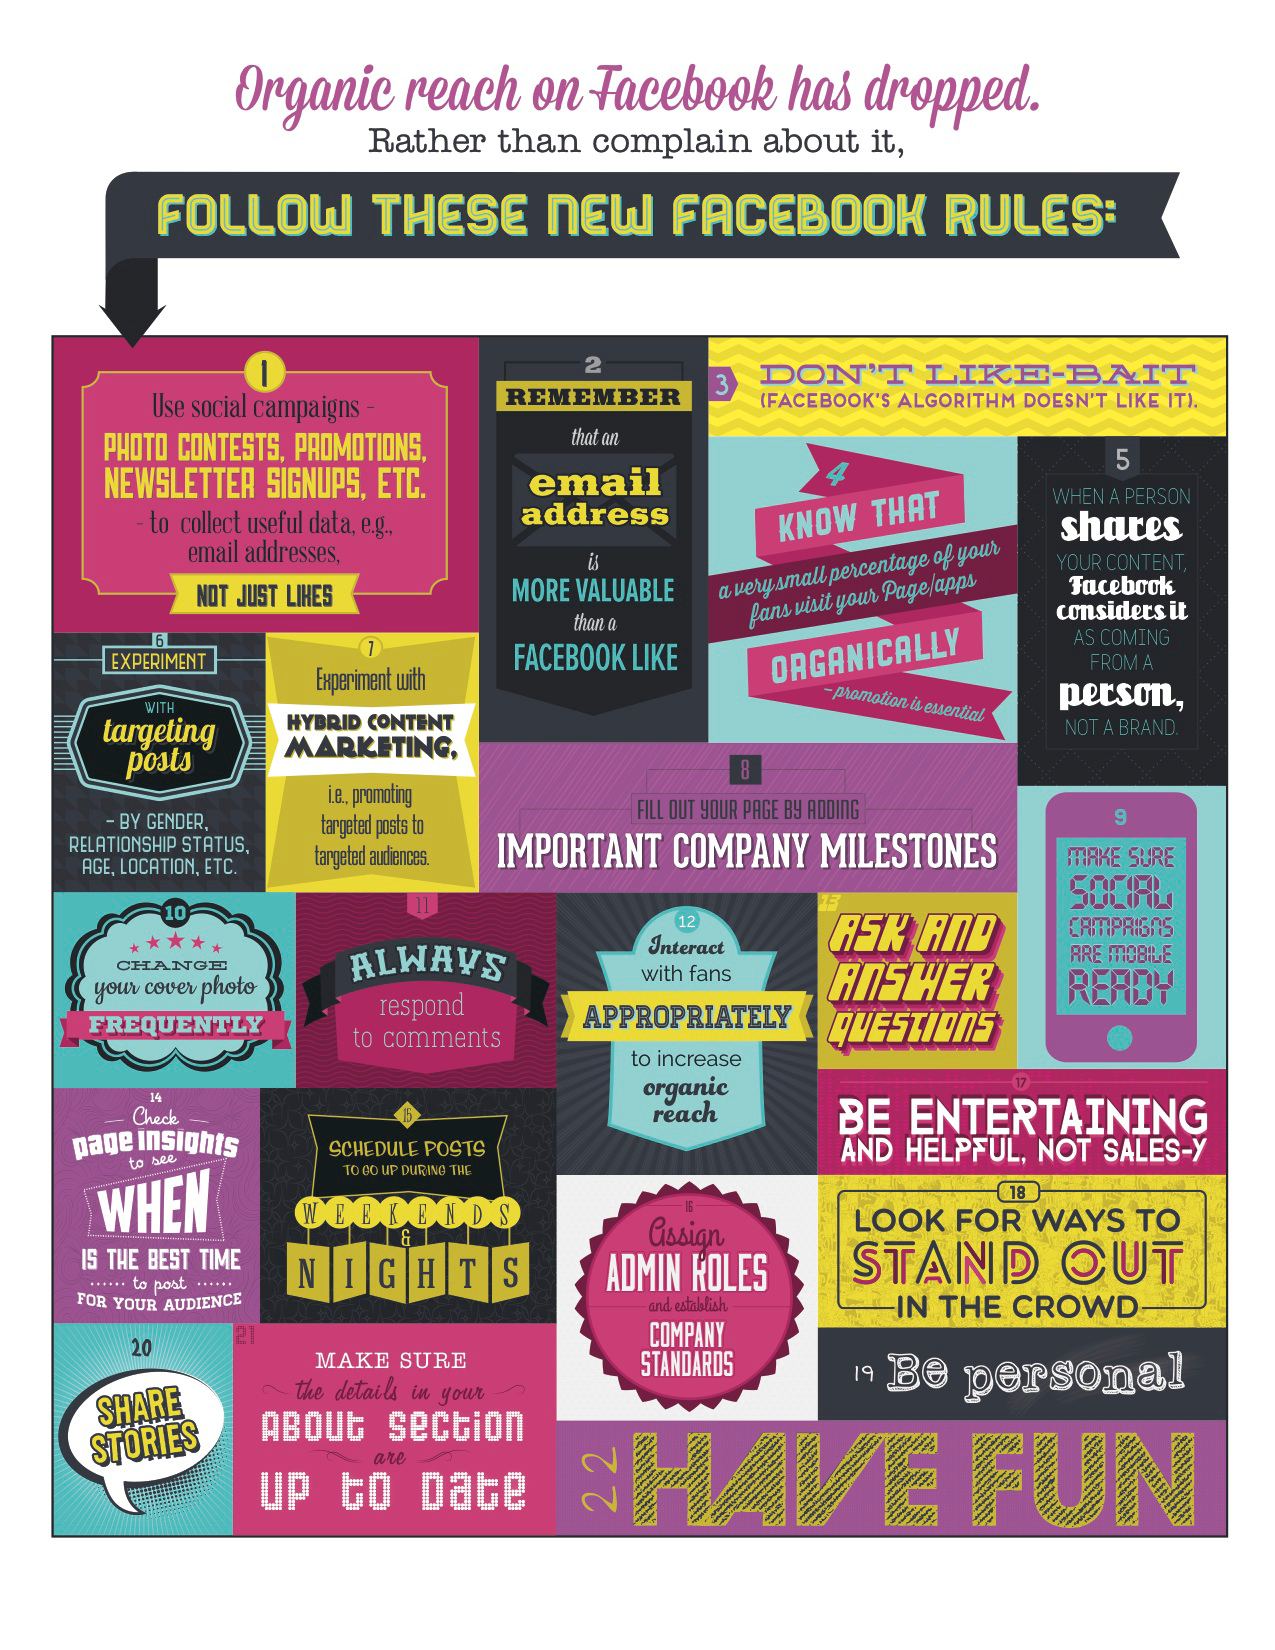 The New Rules of Facebook